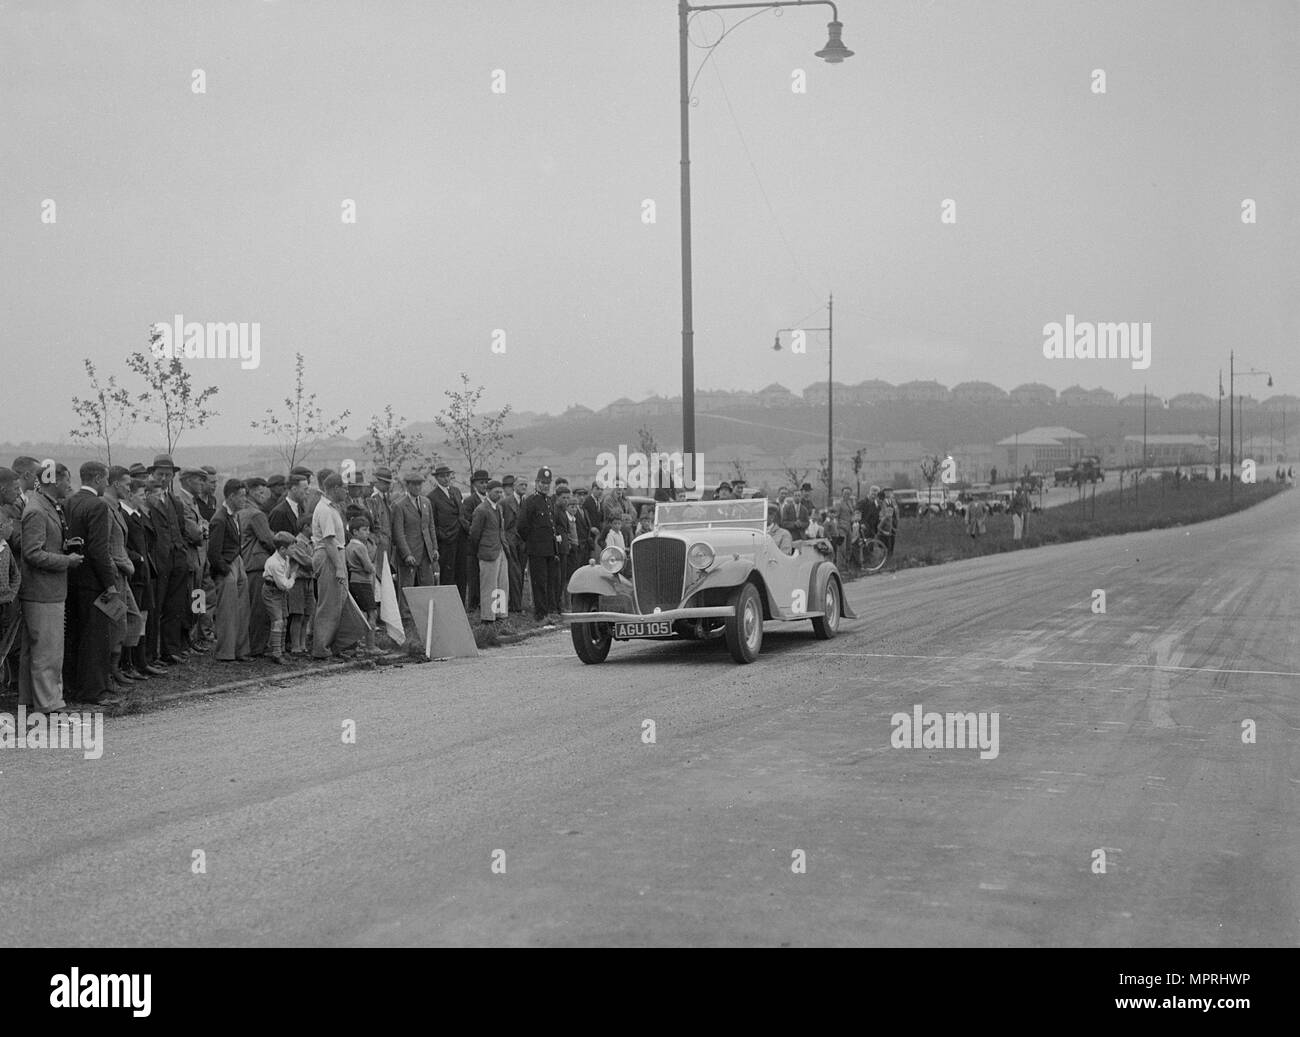 Essex Terraplane of Norman Black competing in the RSAC Scottish Rally, 1933. Artist: Bill Brunell. - Stock Image